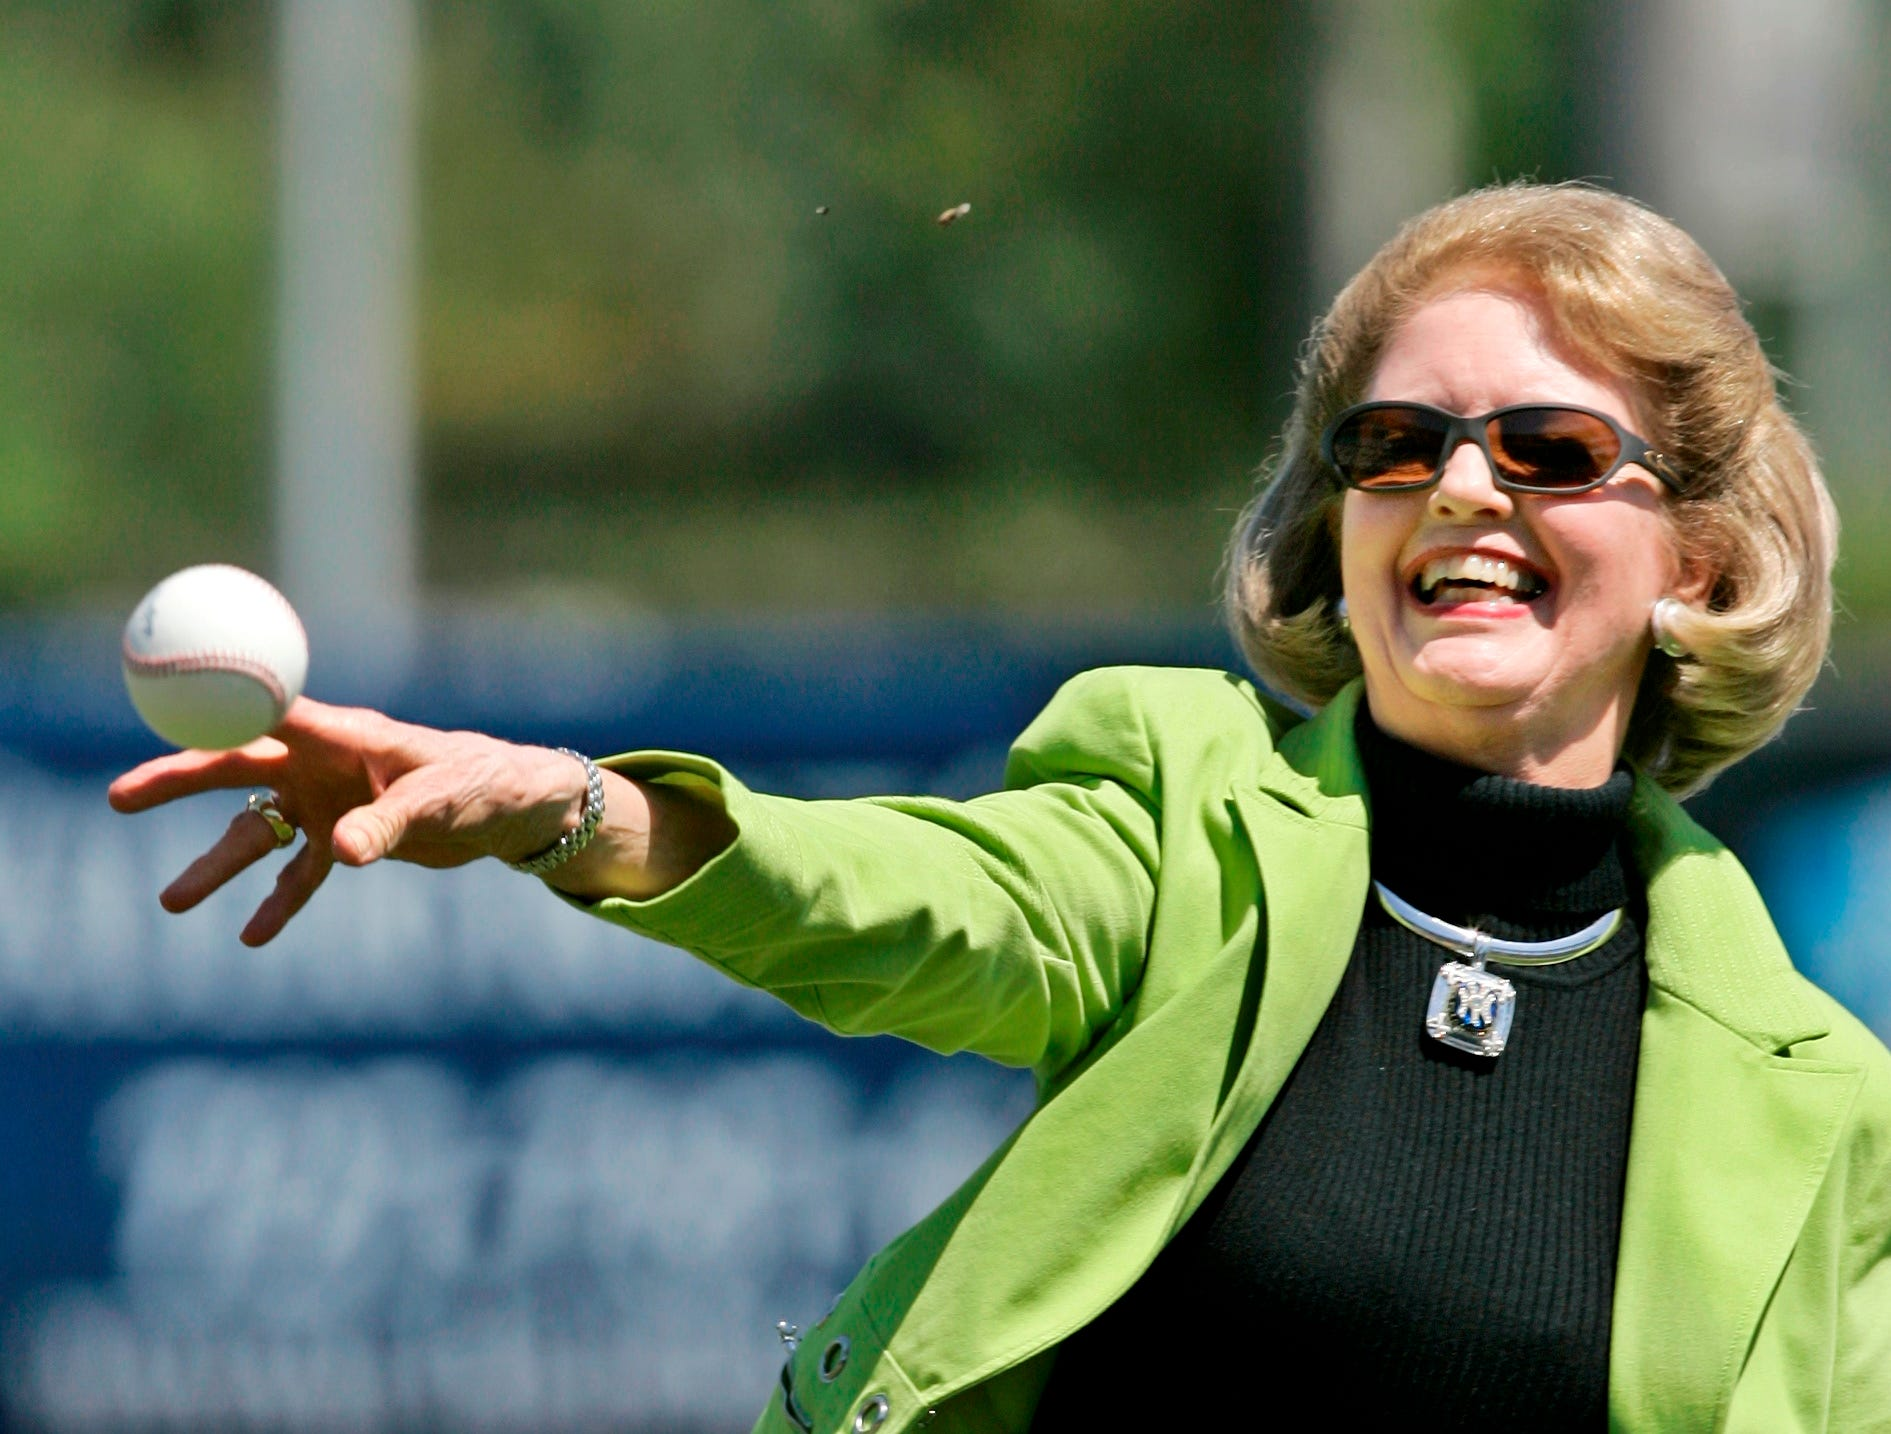 Joan Steinbrenner, wife of New York Yankees owner George Steinbrenner, throws out the first pitch following a baseball pregame ceremony renaming Legends Field to George M. Steinbrenner Field in Tampa, Fla., Thursday, March 27, 2008.